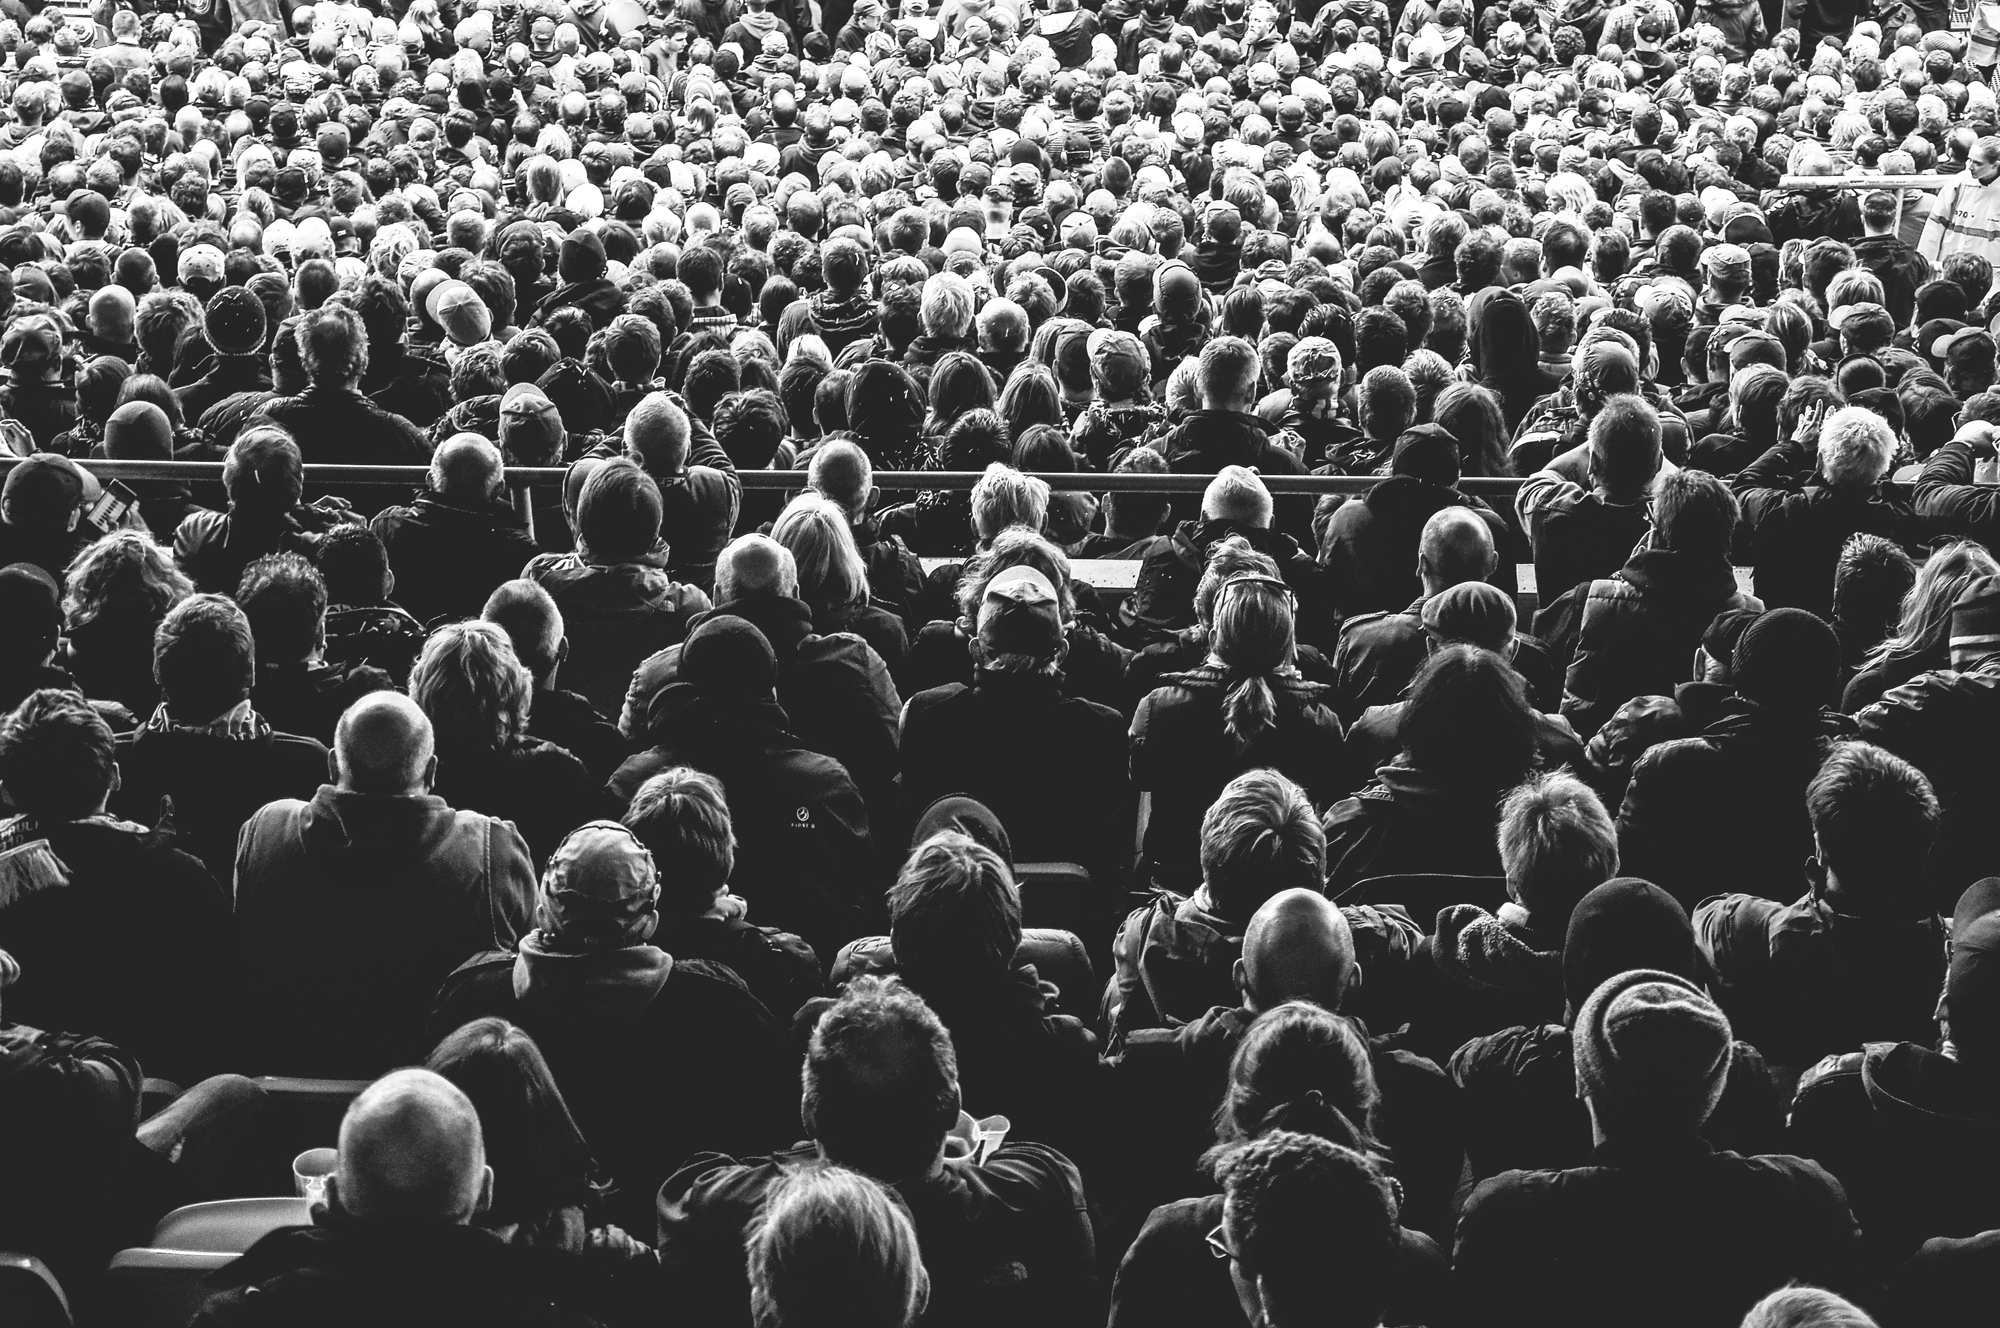 A very large seated group of people photographed from the back (photo by Davide Ragusa).